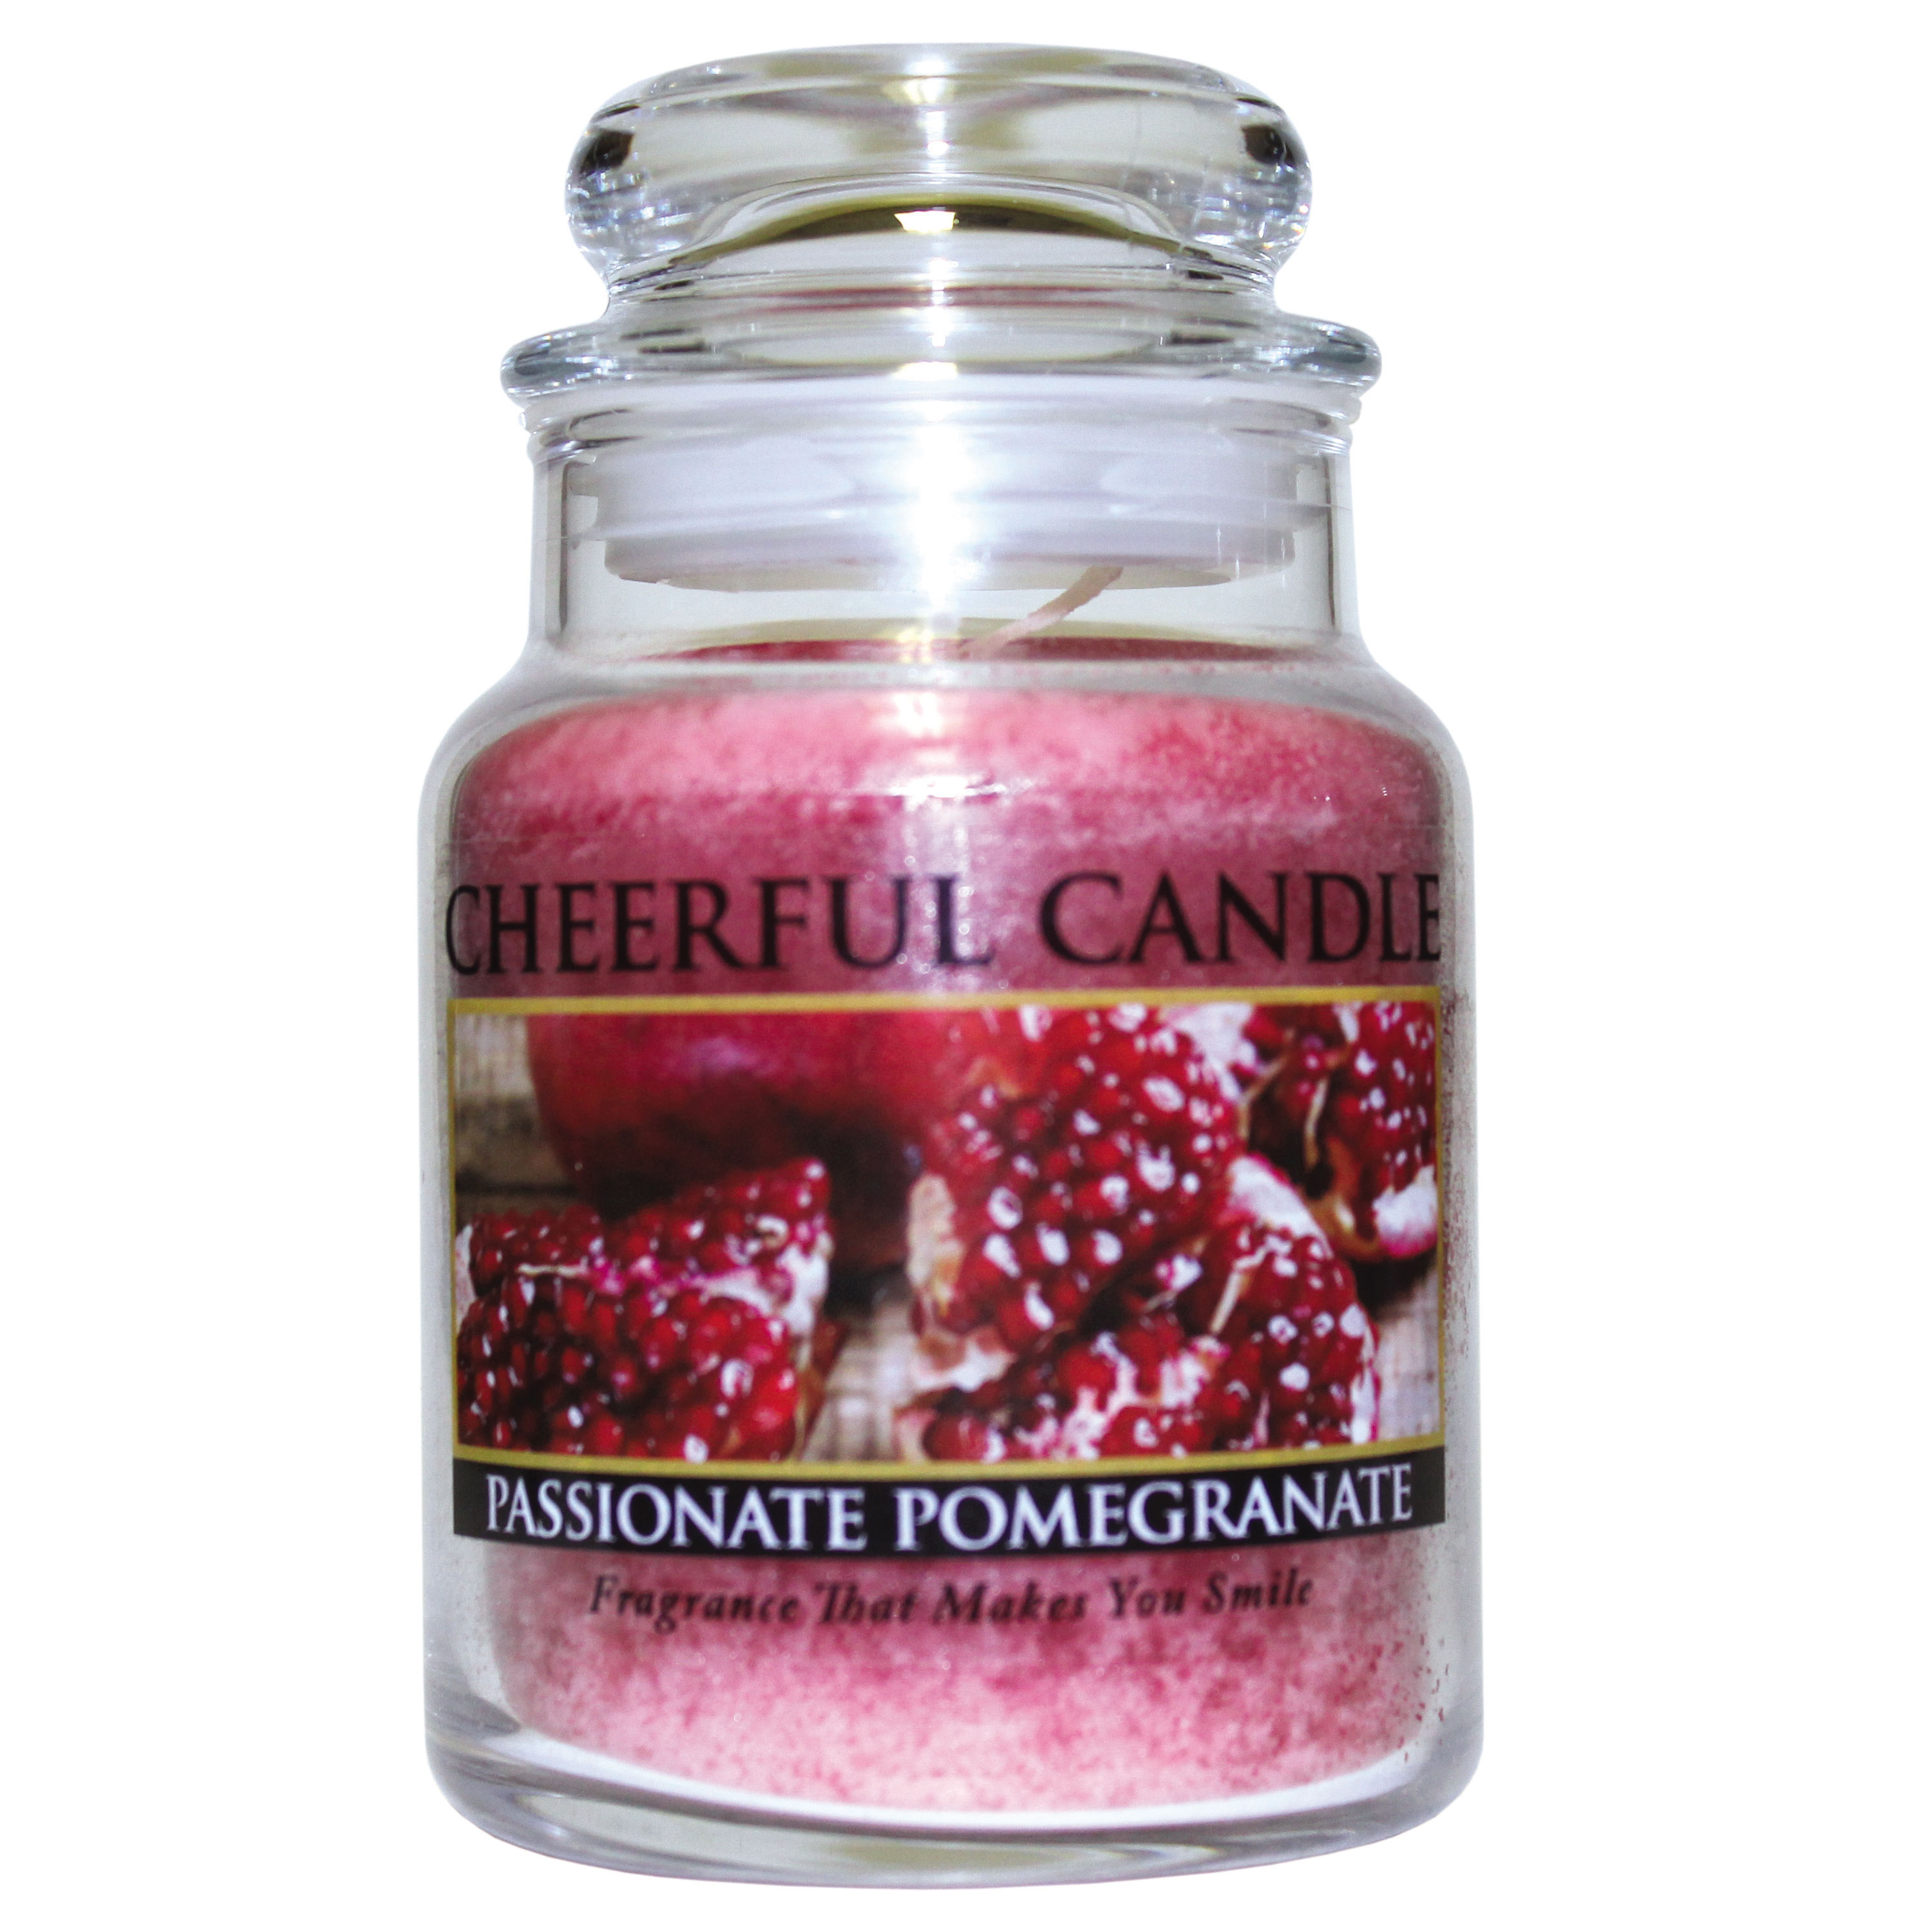 Passionate Pomegranate 6oz Cheerful Candle